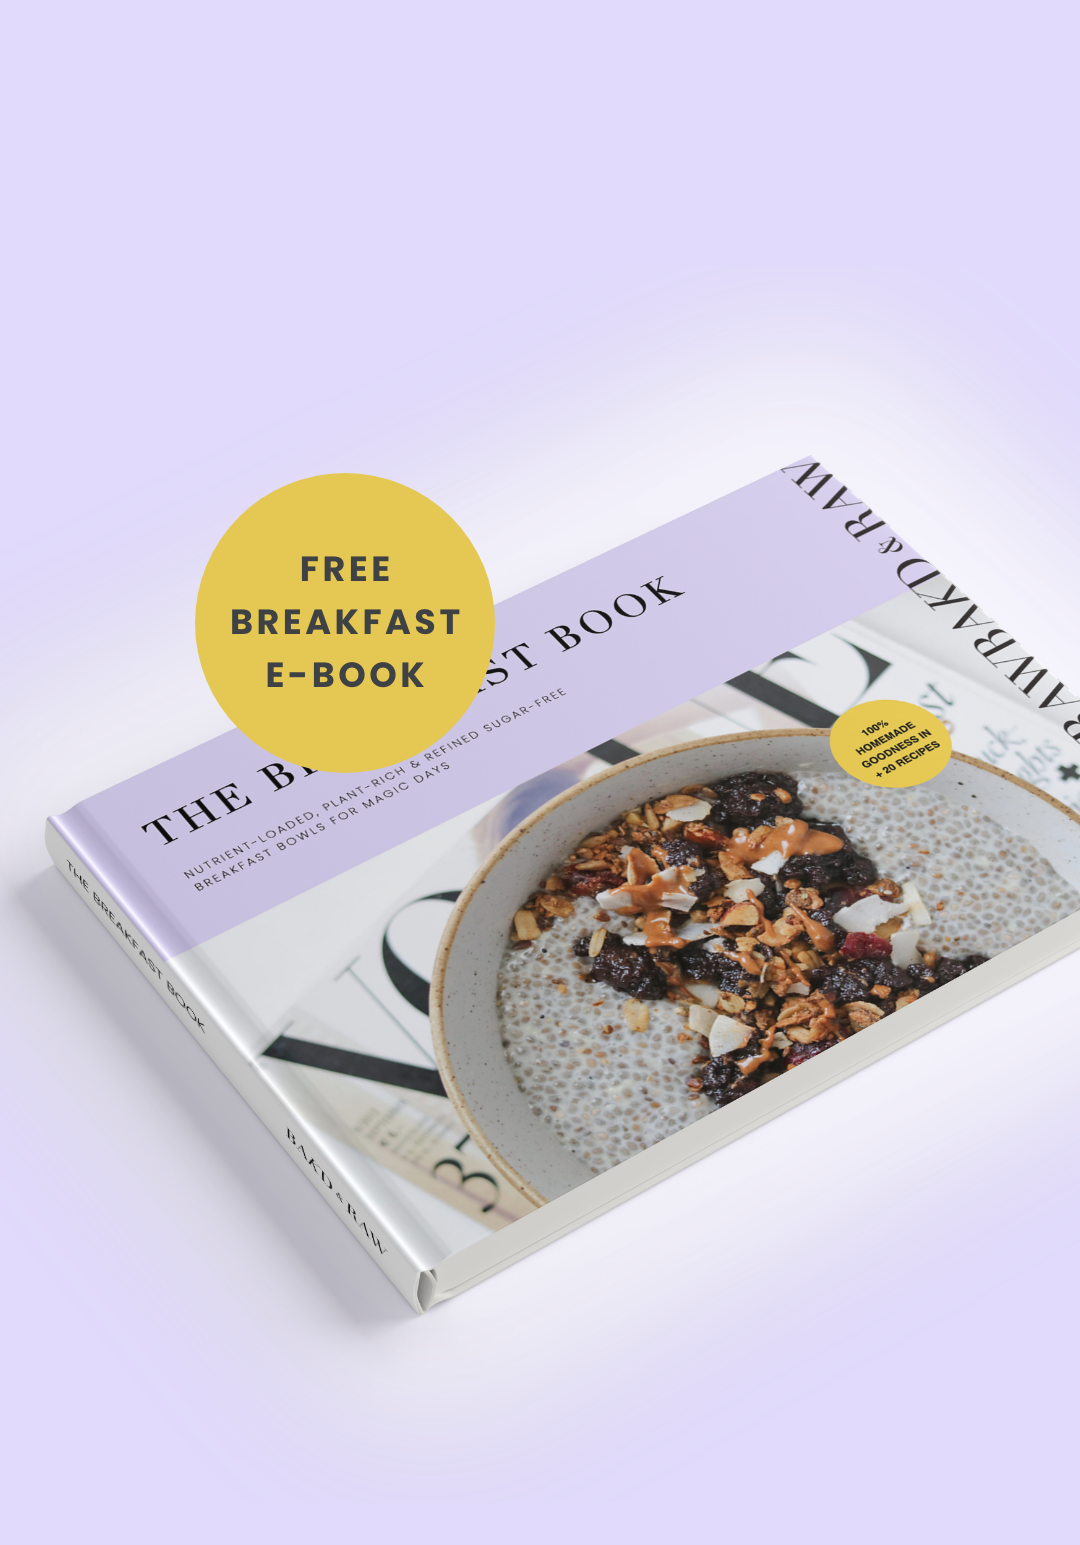 GET YOUR FREE PLANT-RICH BREAKFAST E-BOOK